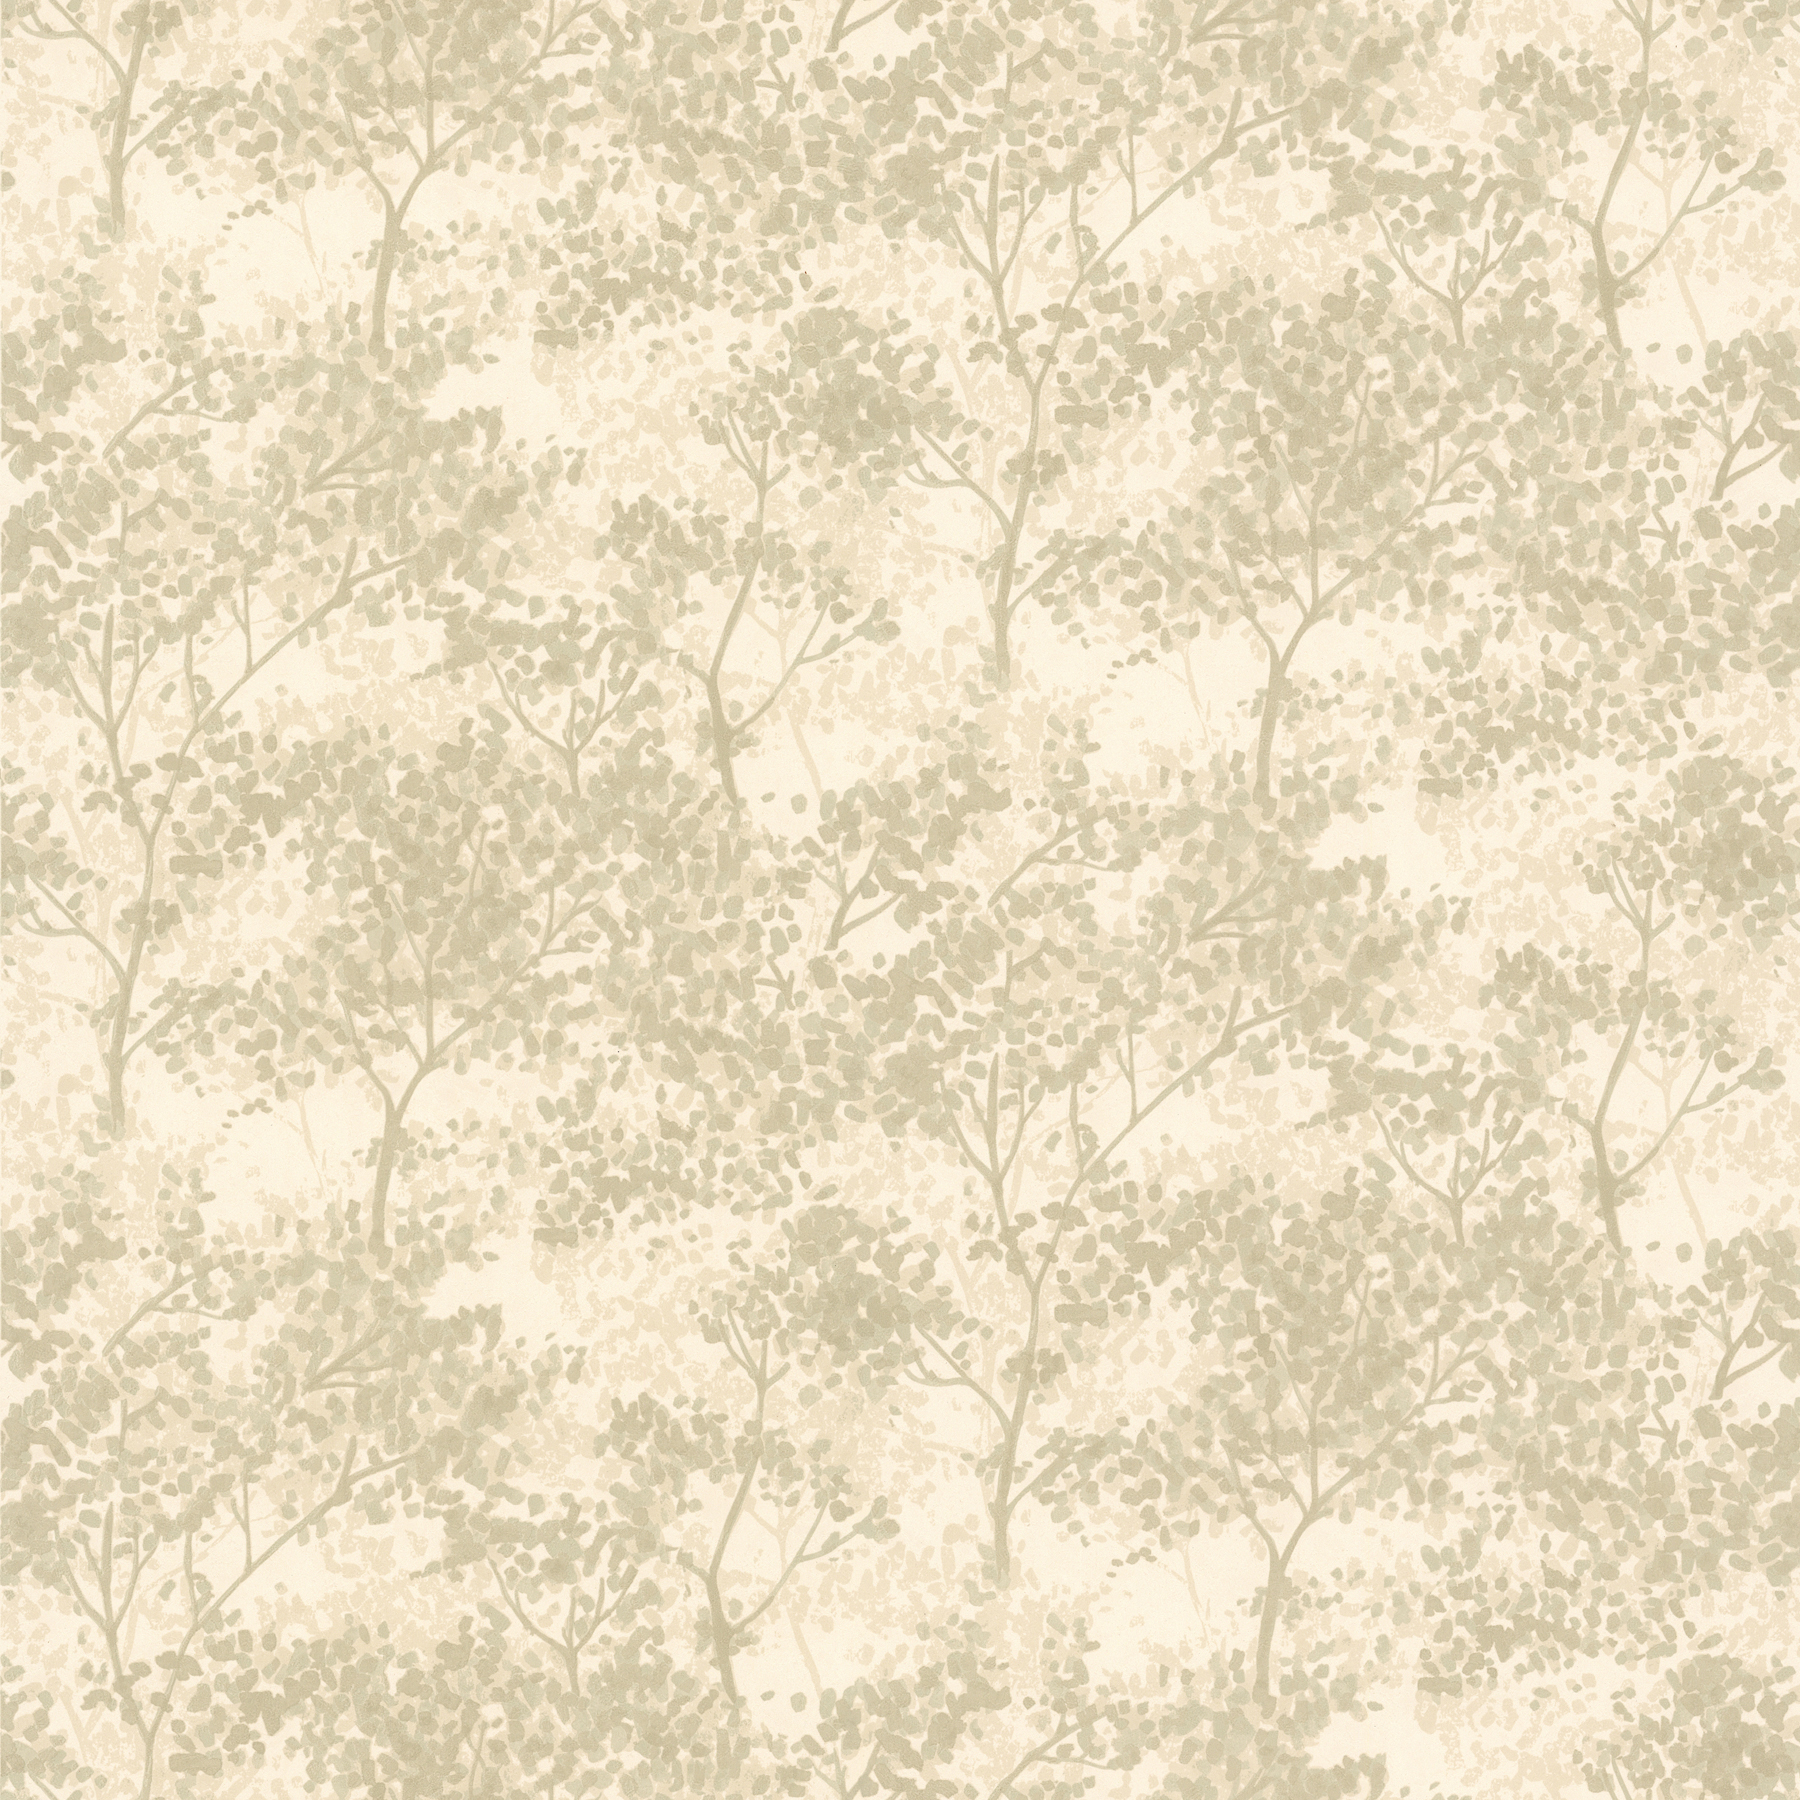 Kitchen Bed Bath IV by Brewster 2686-20272 Prevost Silver Peacock Wallpaper